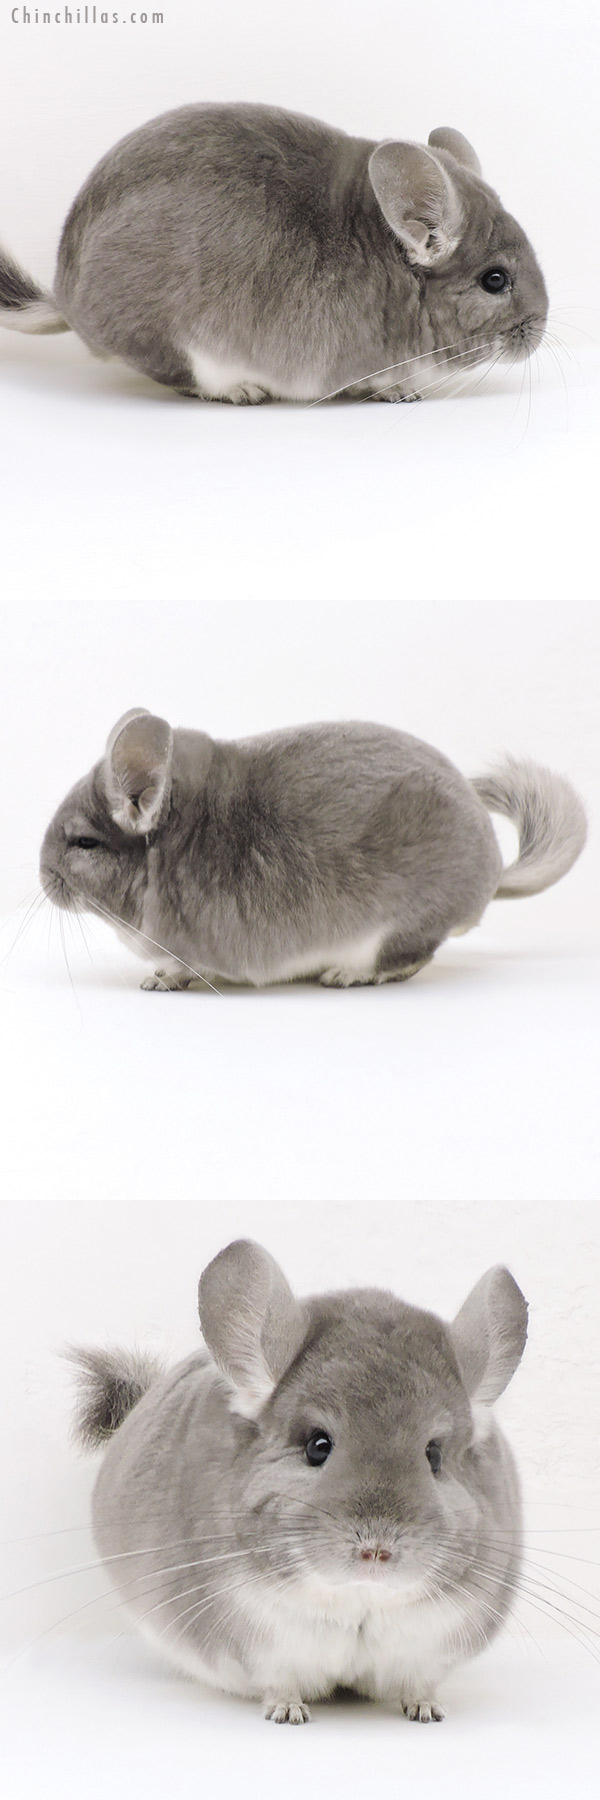 17362 Large Blocky Violet Male Chinchilla